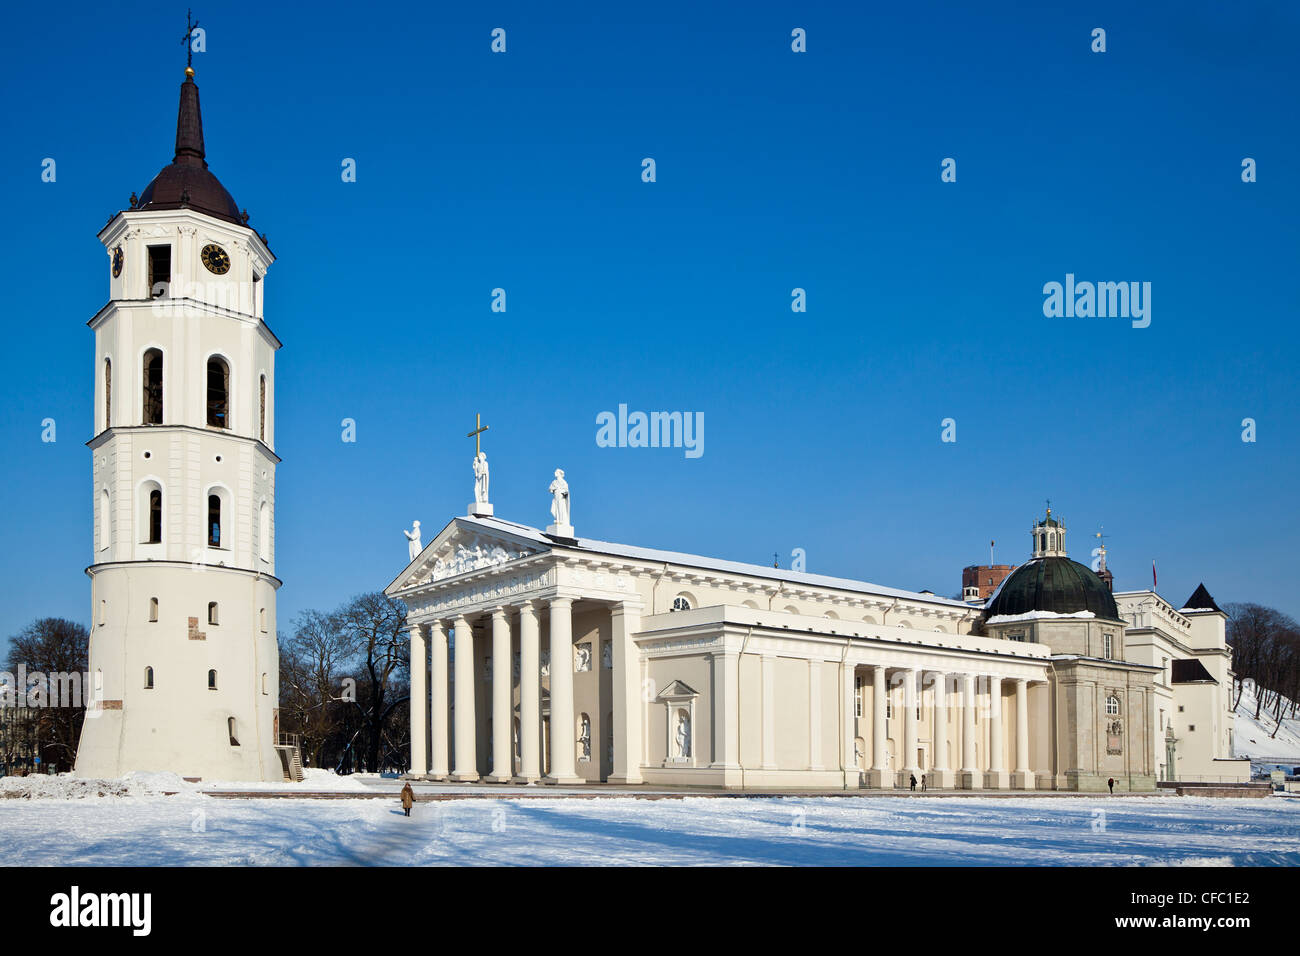 The Cathedral of Vilnius in the snow - Stock Image